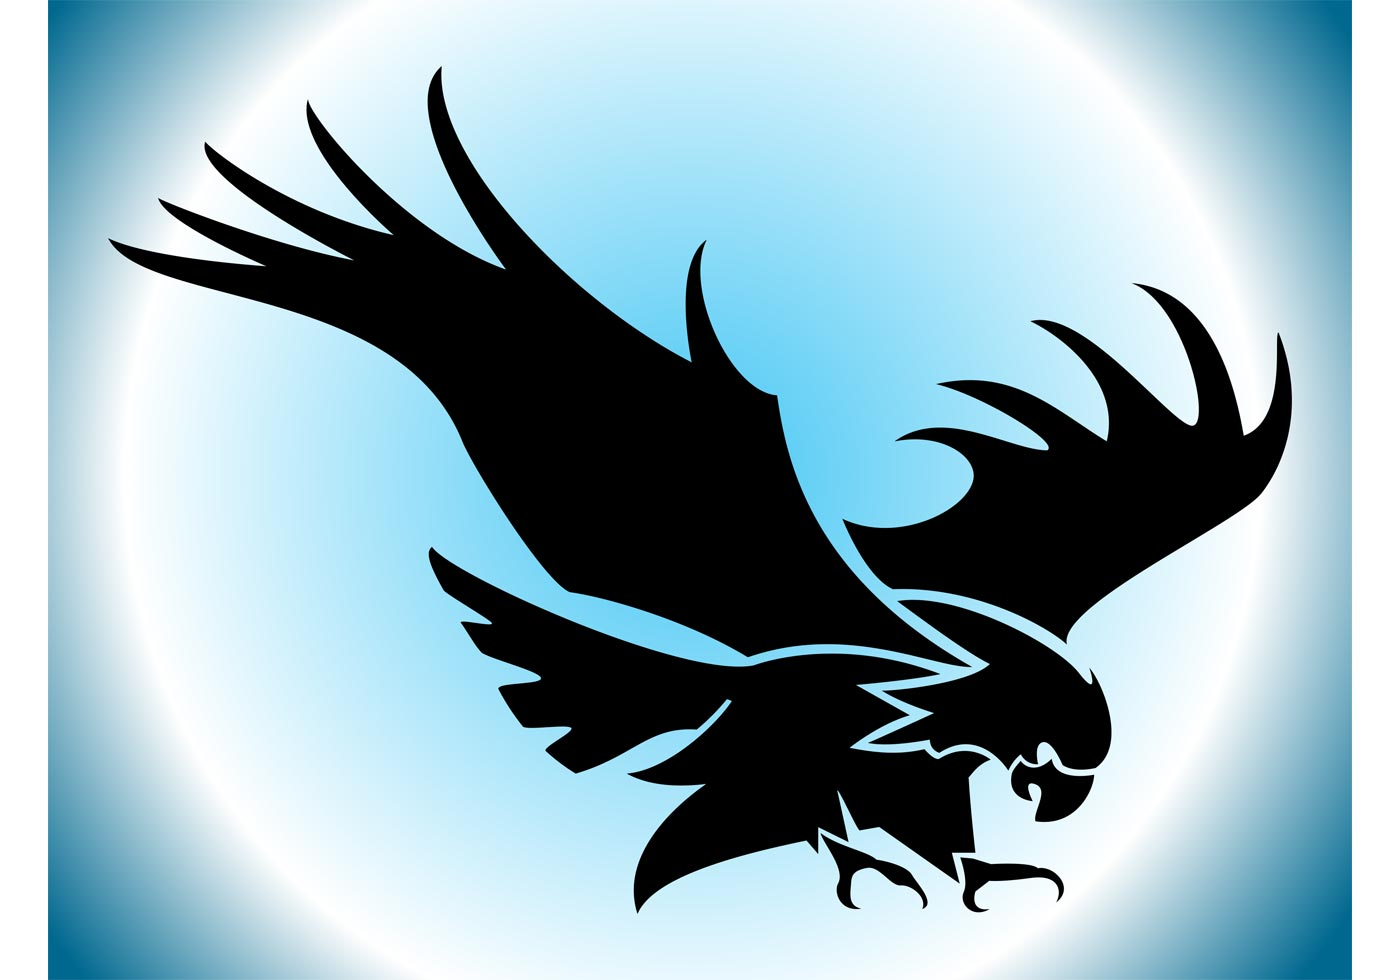 flying eagle silhouette download free vector art stock